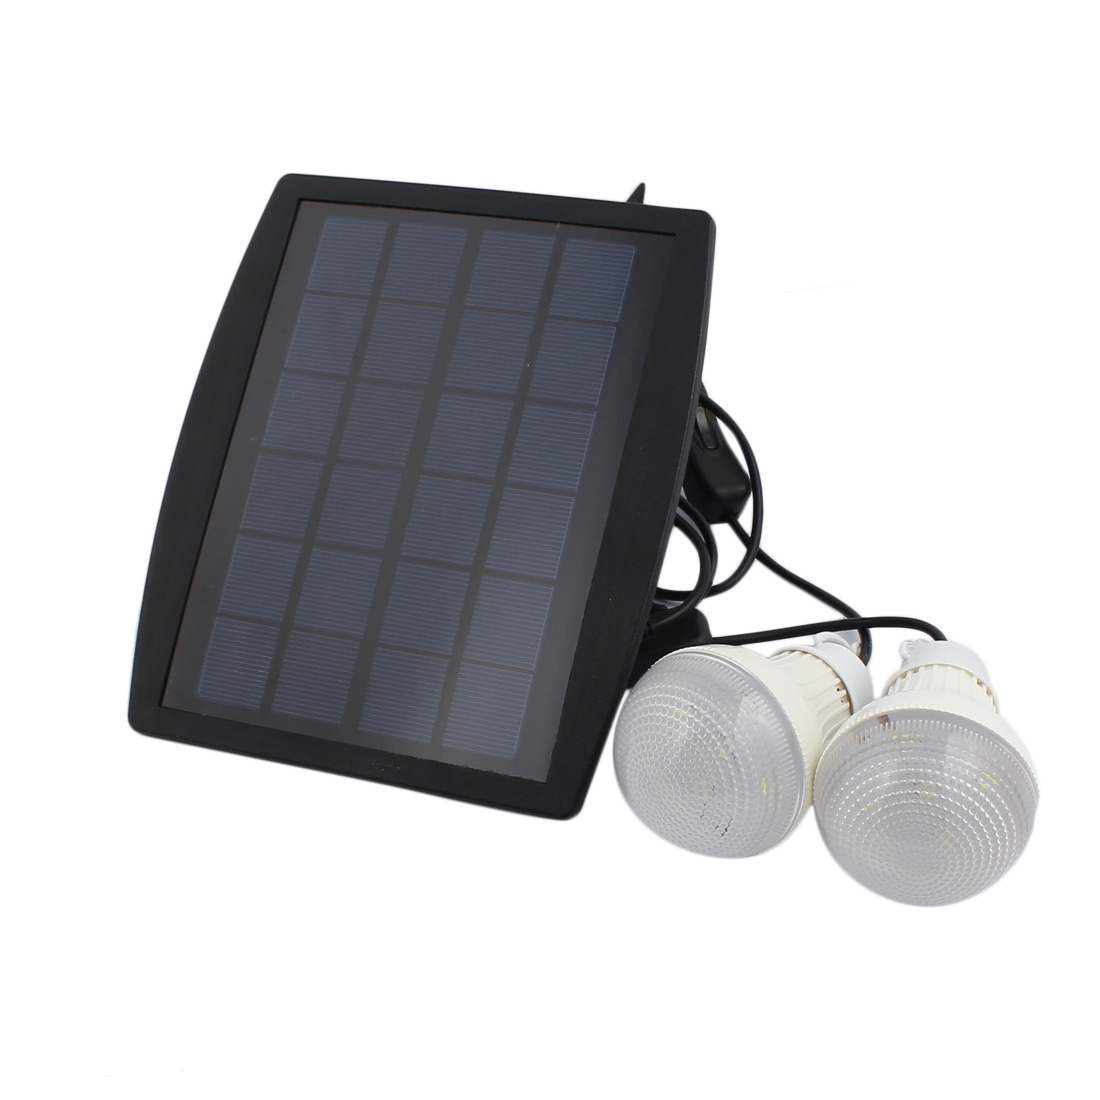 Outdoor Solar Panel Powered 2 LED Bulb Lamp Portable Camp Tent Fishing Light Hook